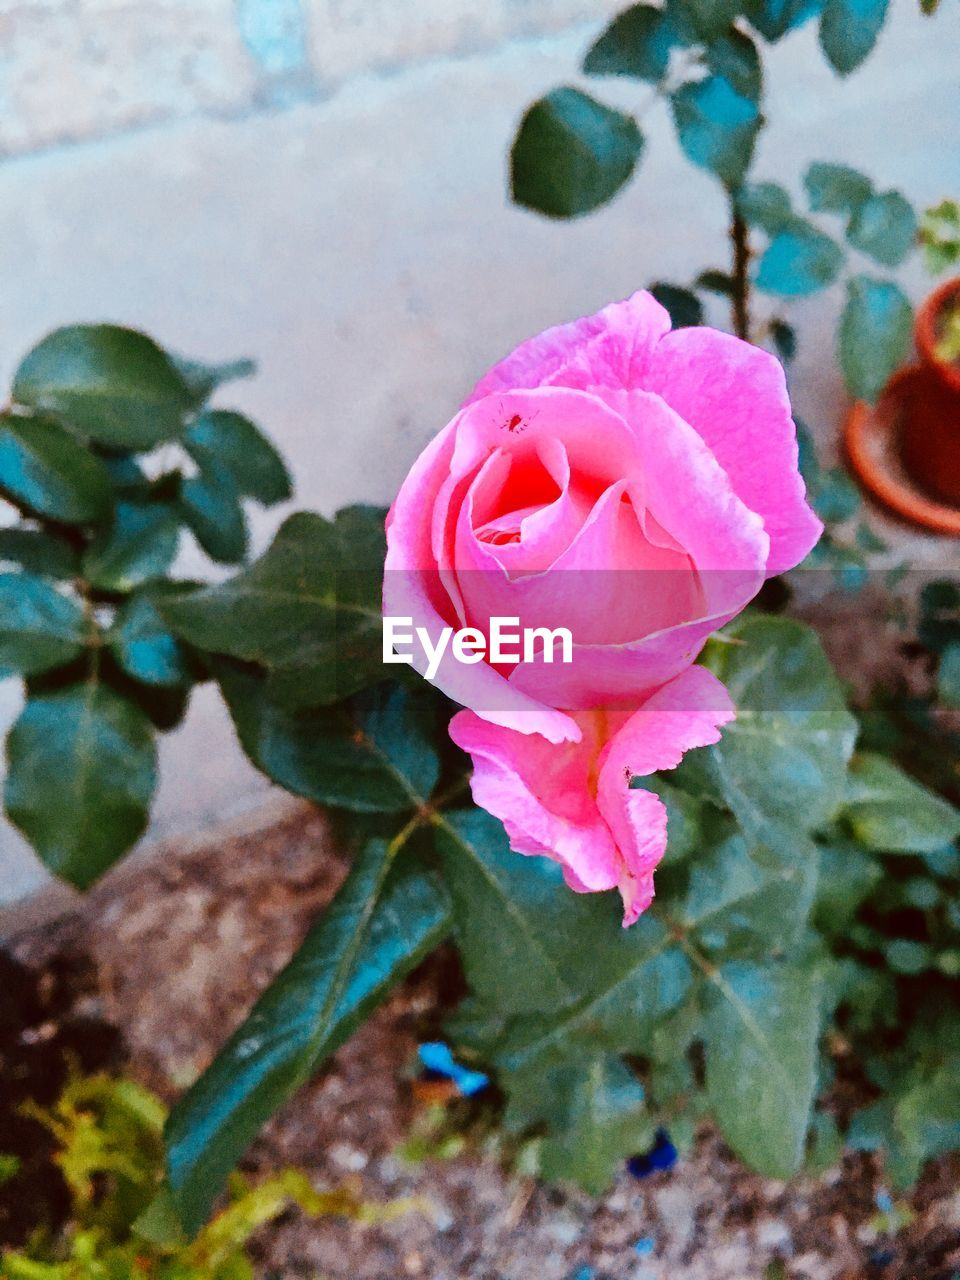 flower, flowering plant, plant, petal, beauty in nature, rose, freshness, vulnerability, fragility, pink color, inflorescence, rose - flower, flower head, close-up, growth, leaf, plant part, nature, no people, outdoors